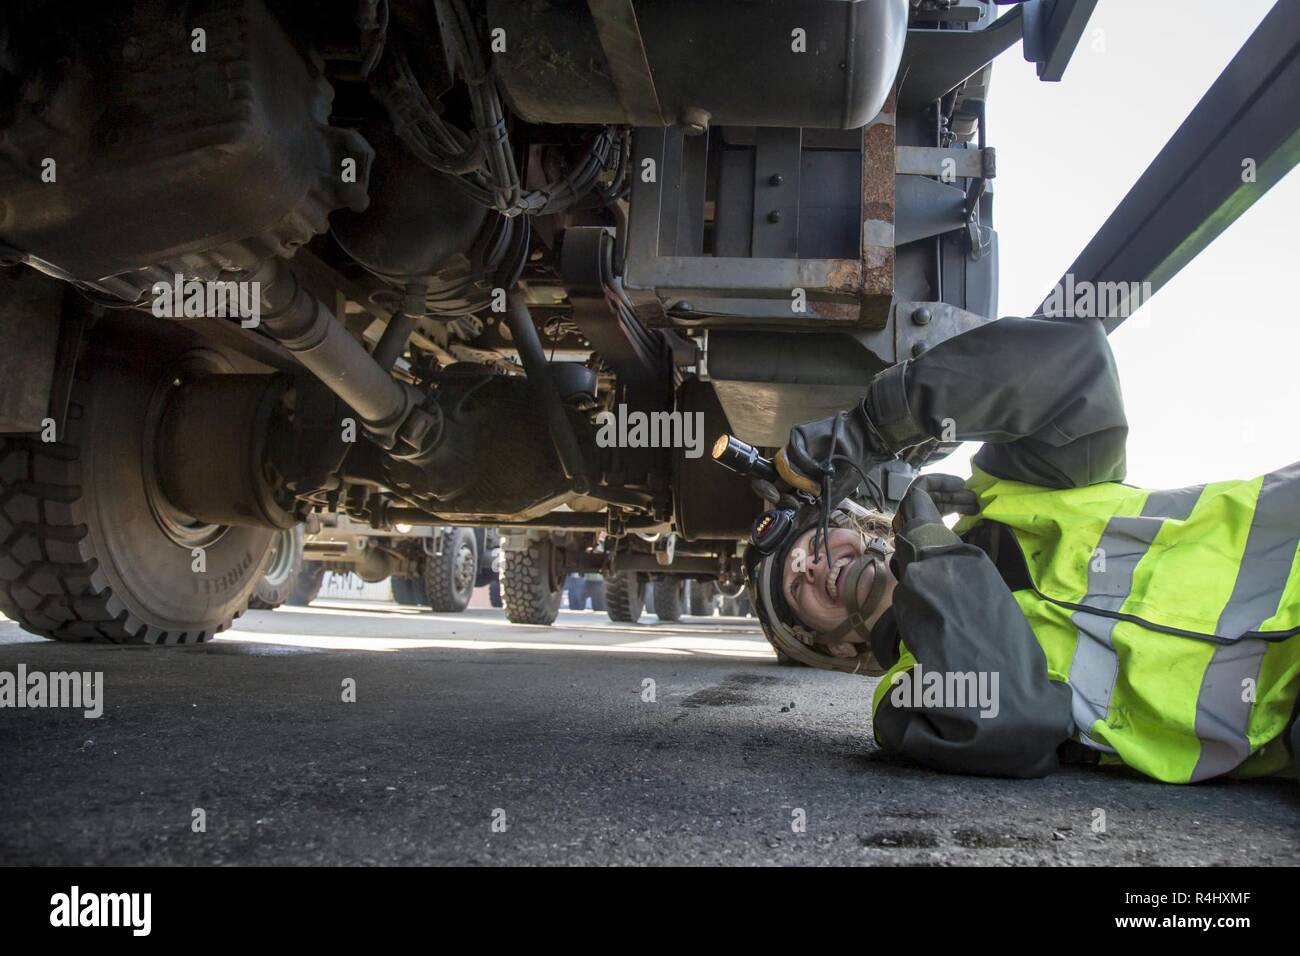 A Norwegian Preventative Medical Technician are checking the vehicles after unloading. Port of Fredrikstad in Norway, NATO exercise Trident Juncture on 28.09.2018. Stock Photo